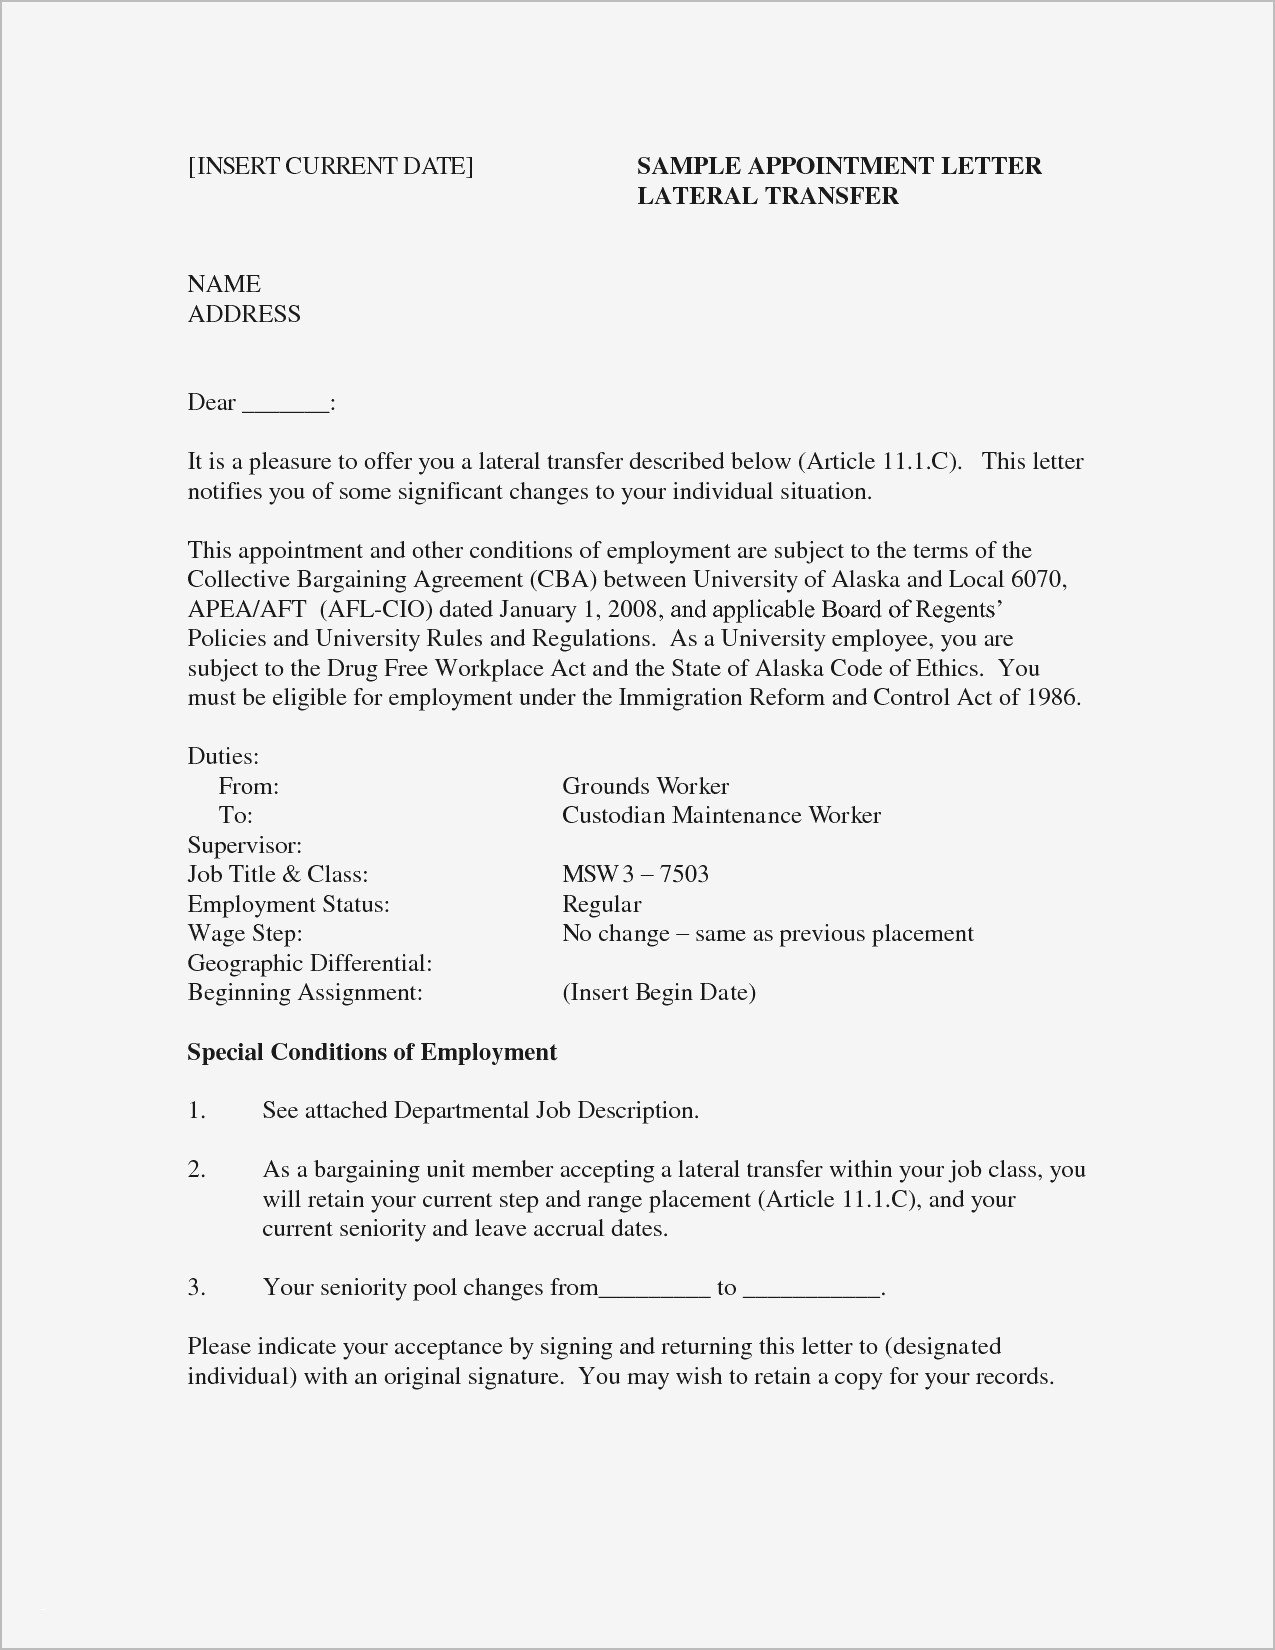 Physical Education Teacher Resume - Substitute Teacher Resume Objective